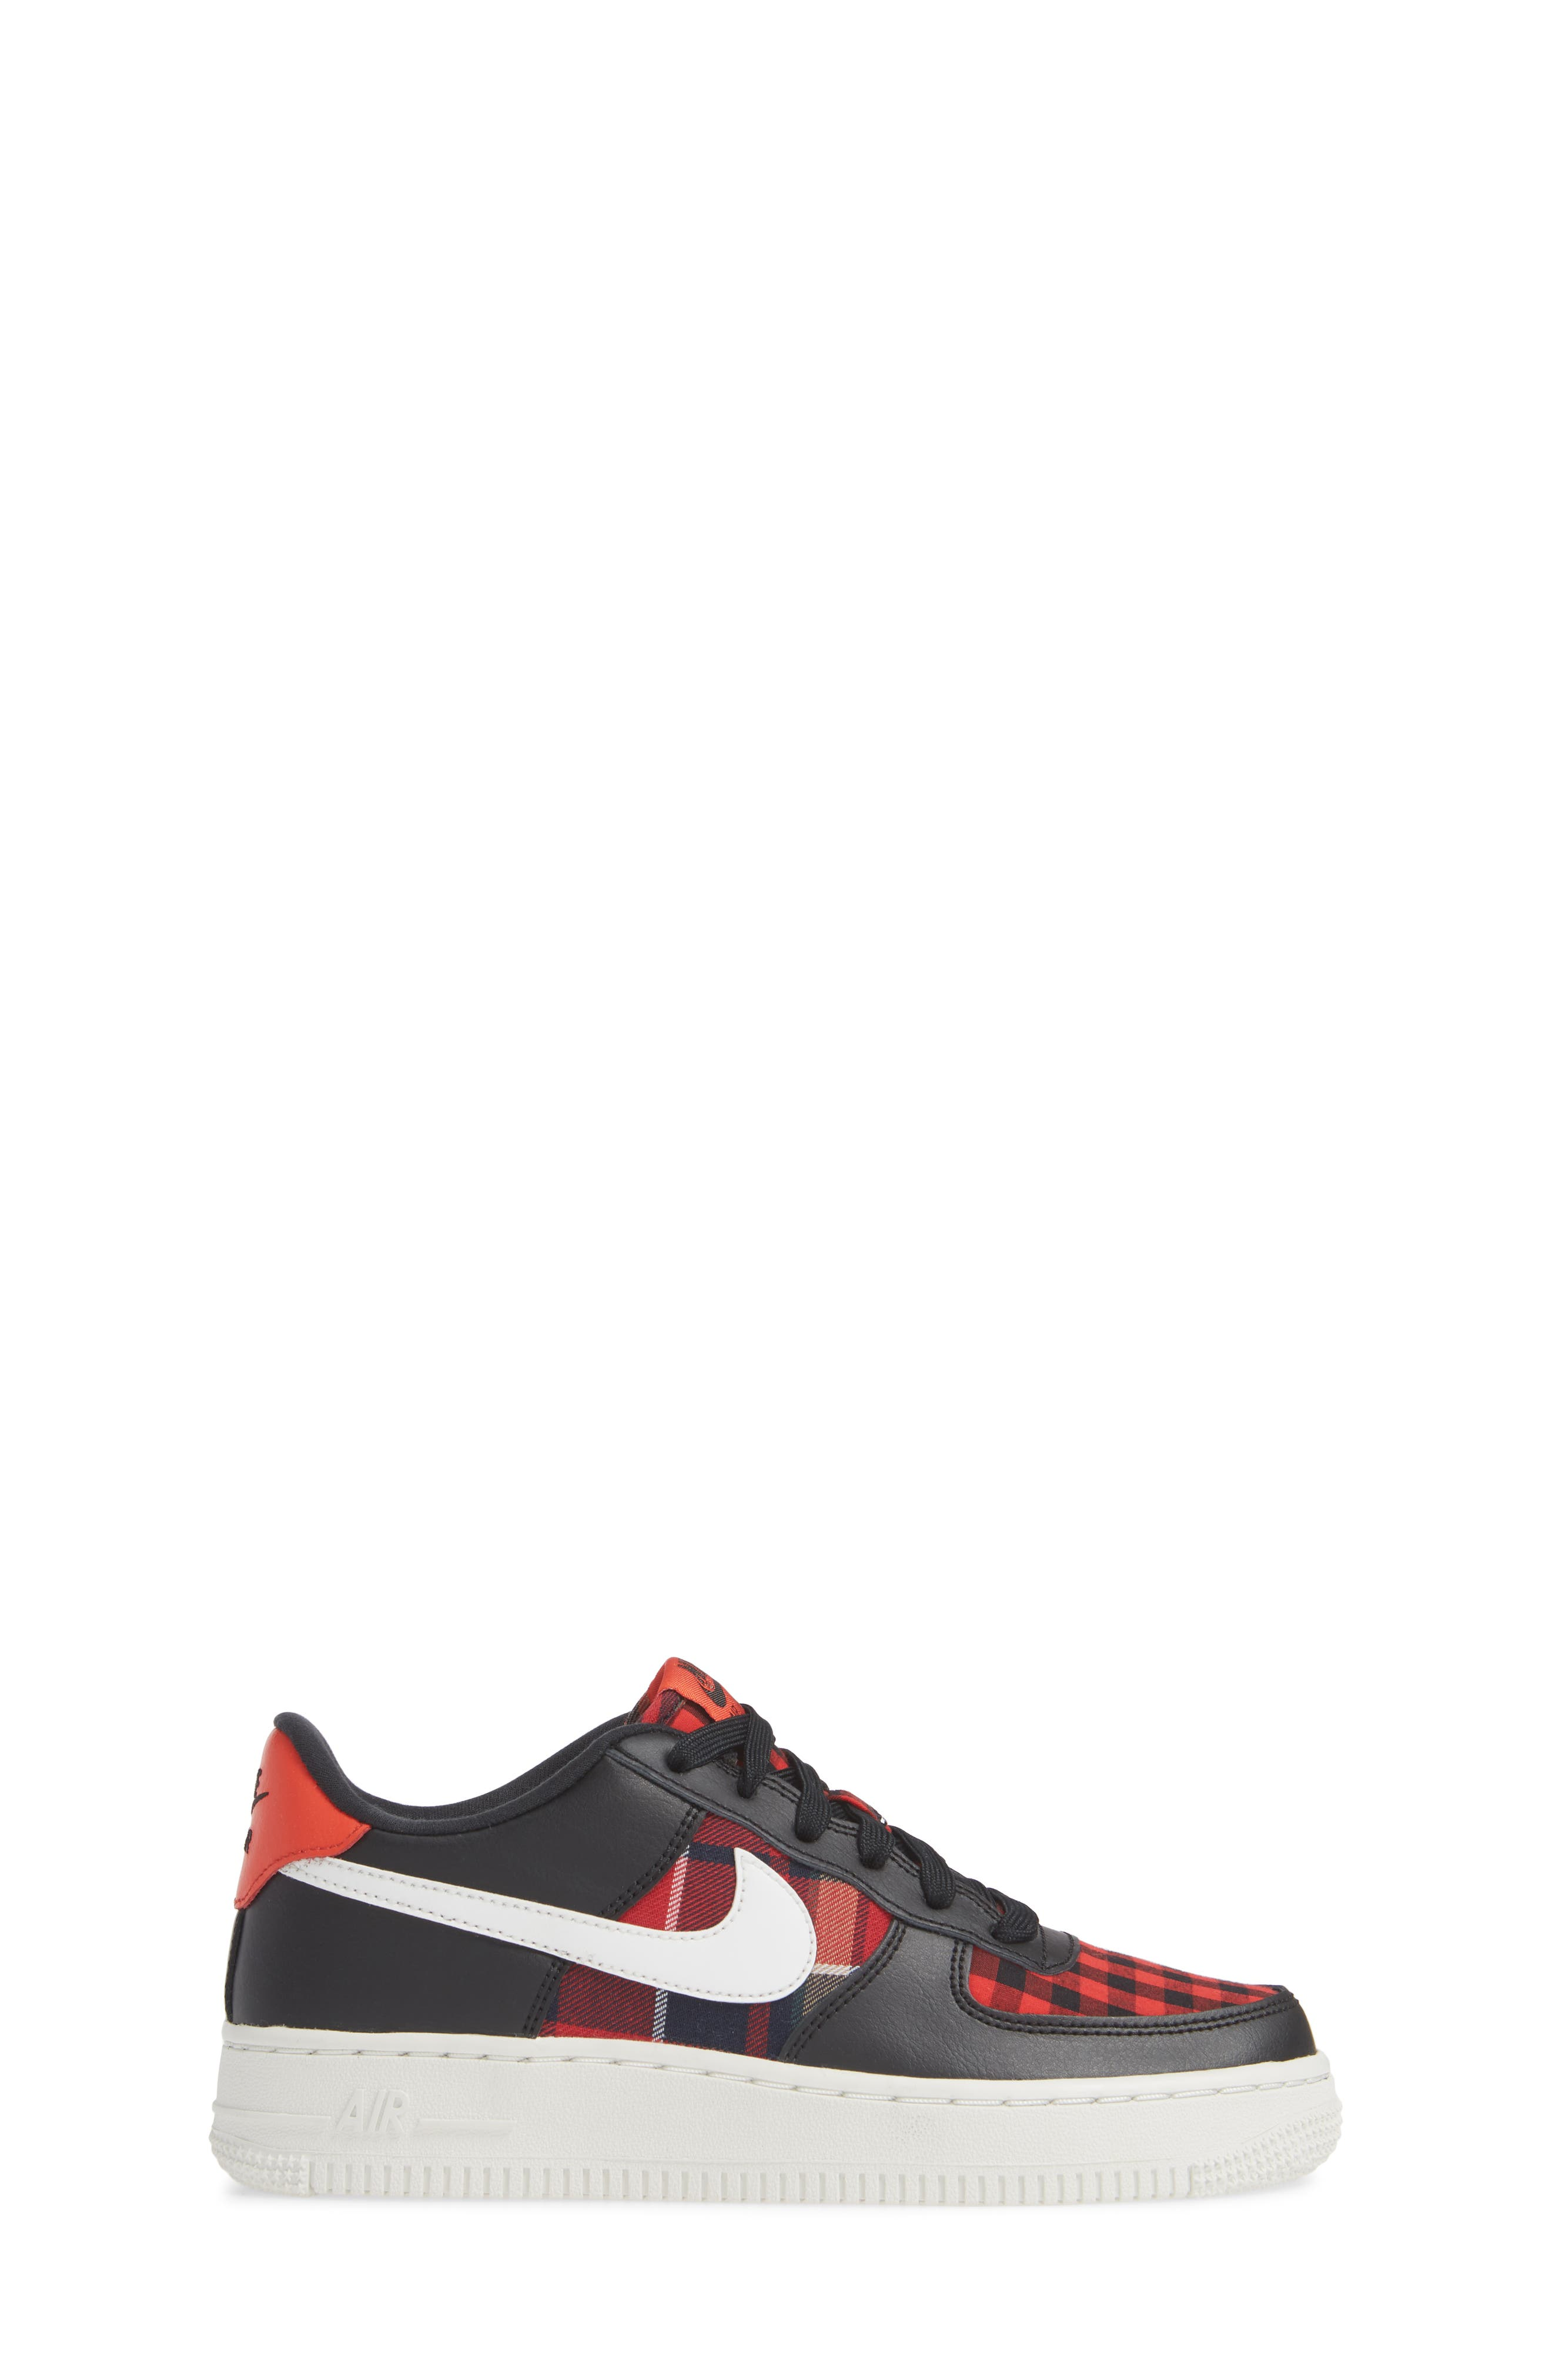 Air Force 1 LV8 Sneaker,                             Alternate thumbnail 3, color,                             BLACK/ SUMMIT RED